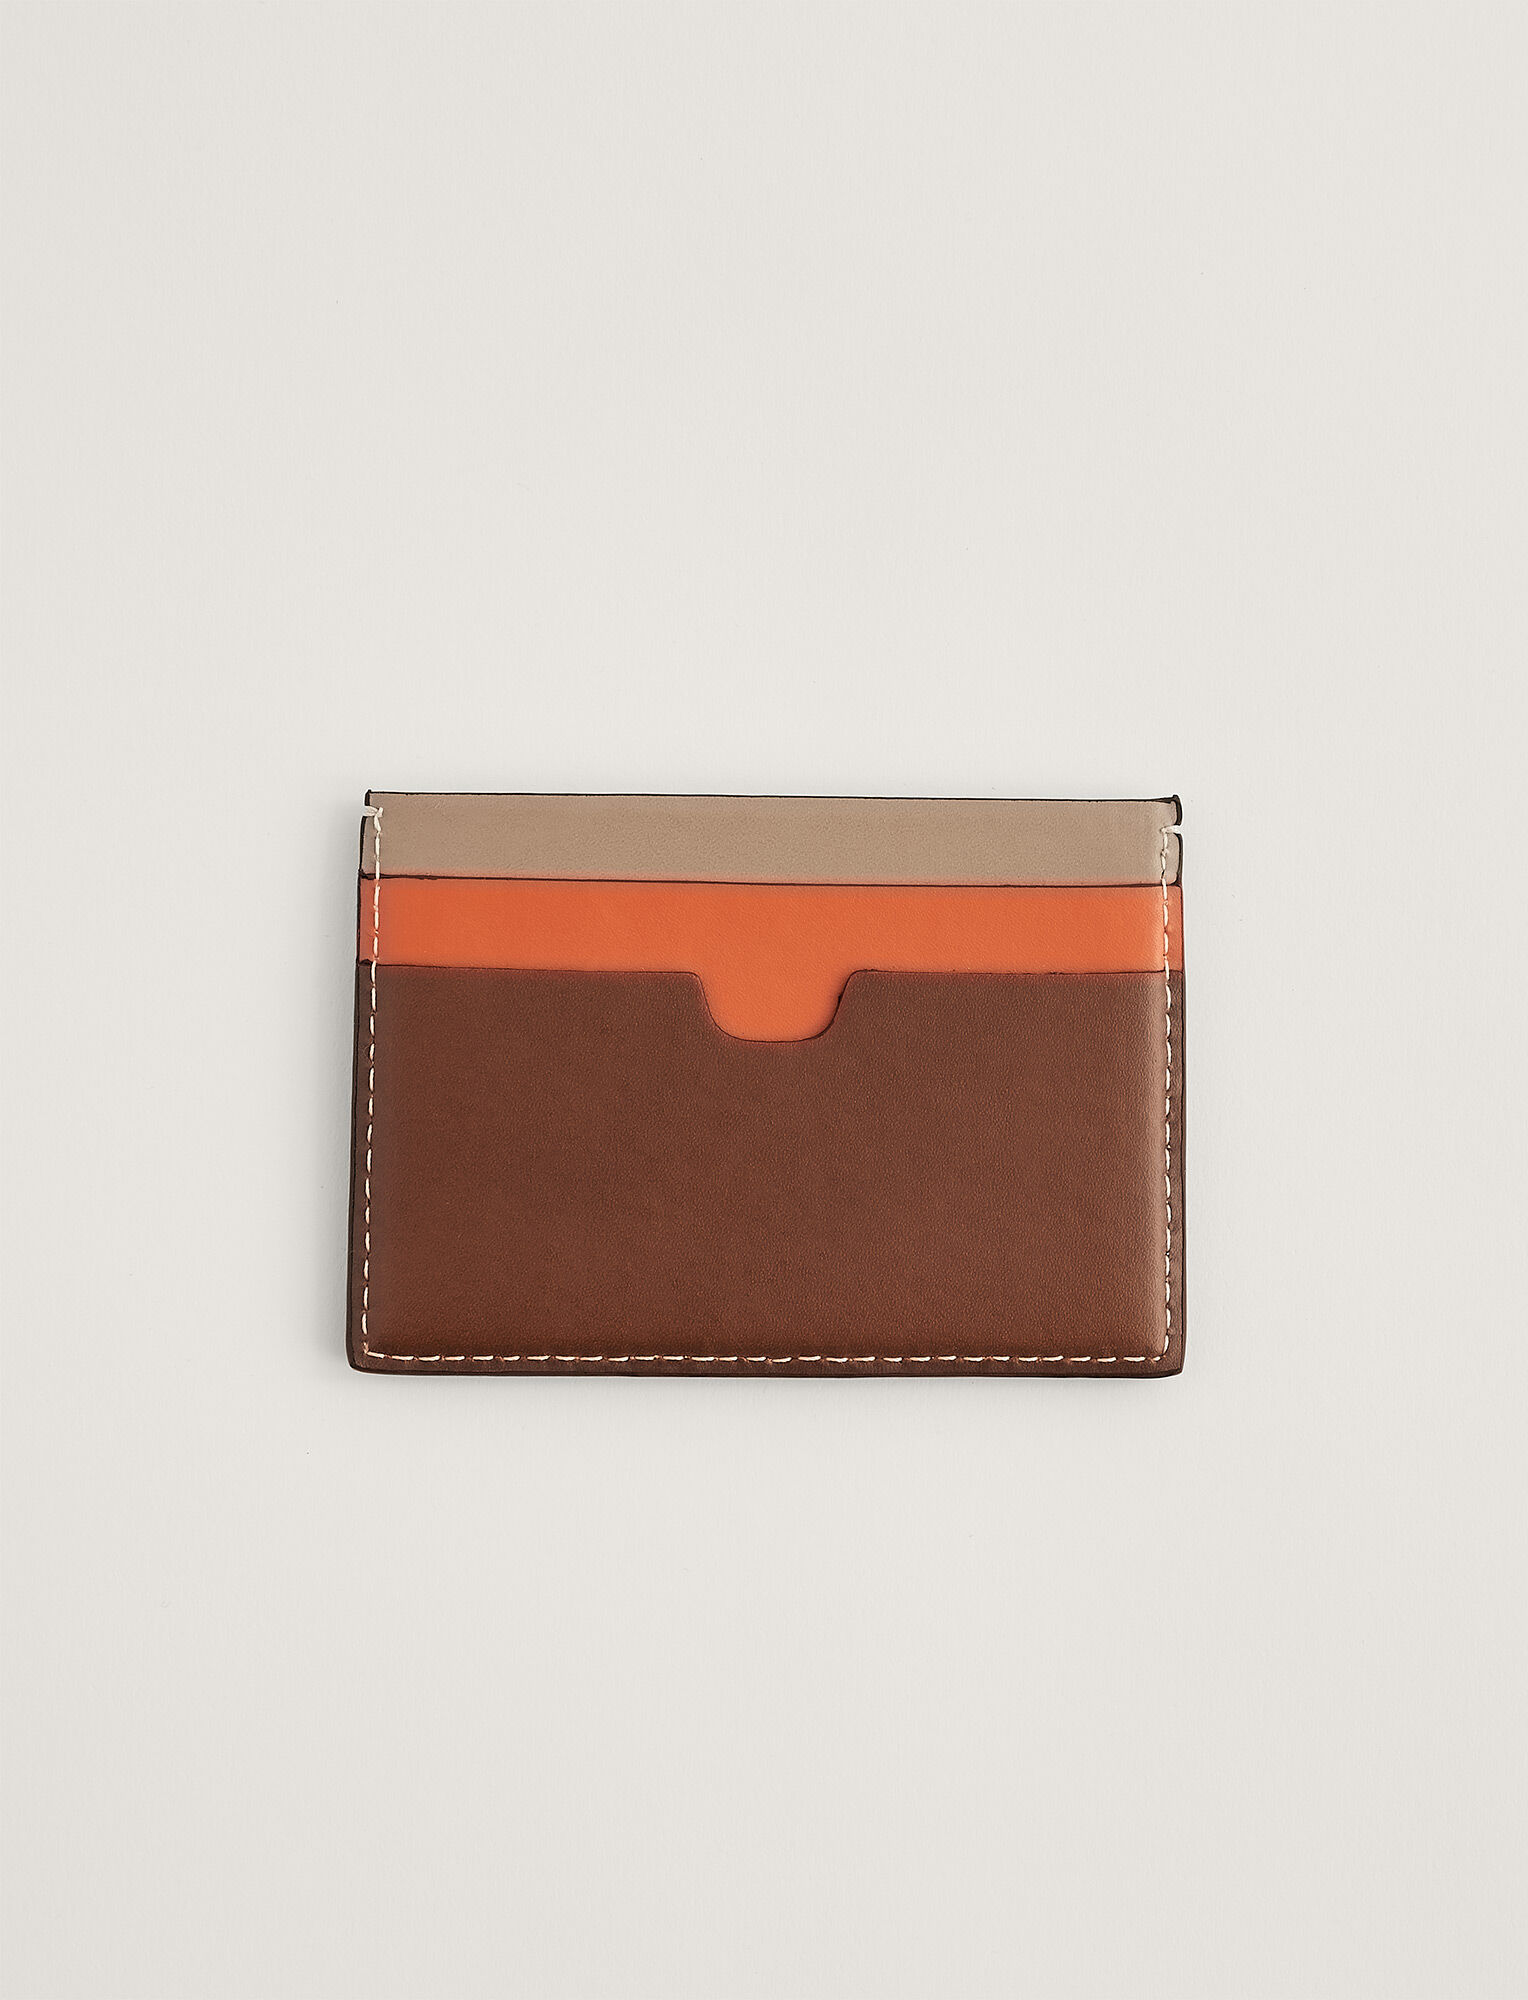 Joseph, Leather Card Holder, in MIX 3 MINK/ORANGE/TAN